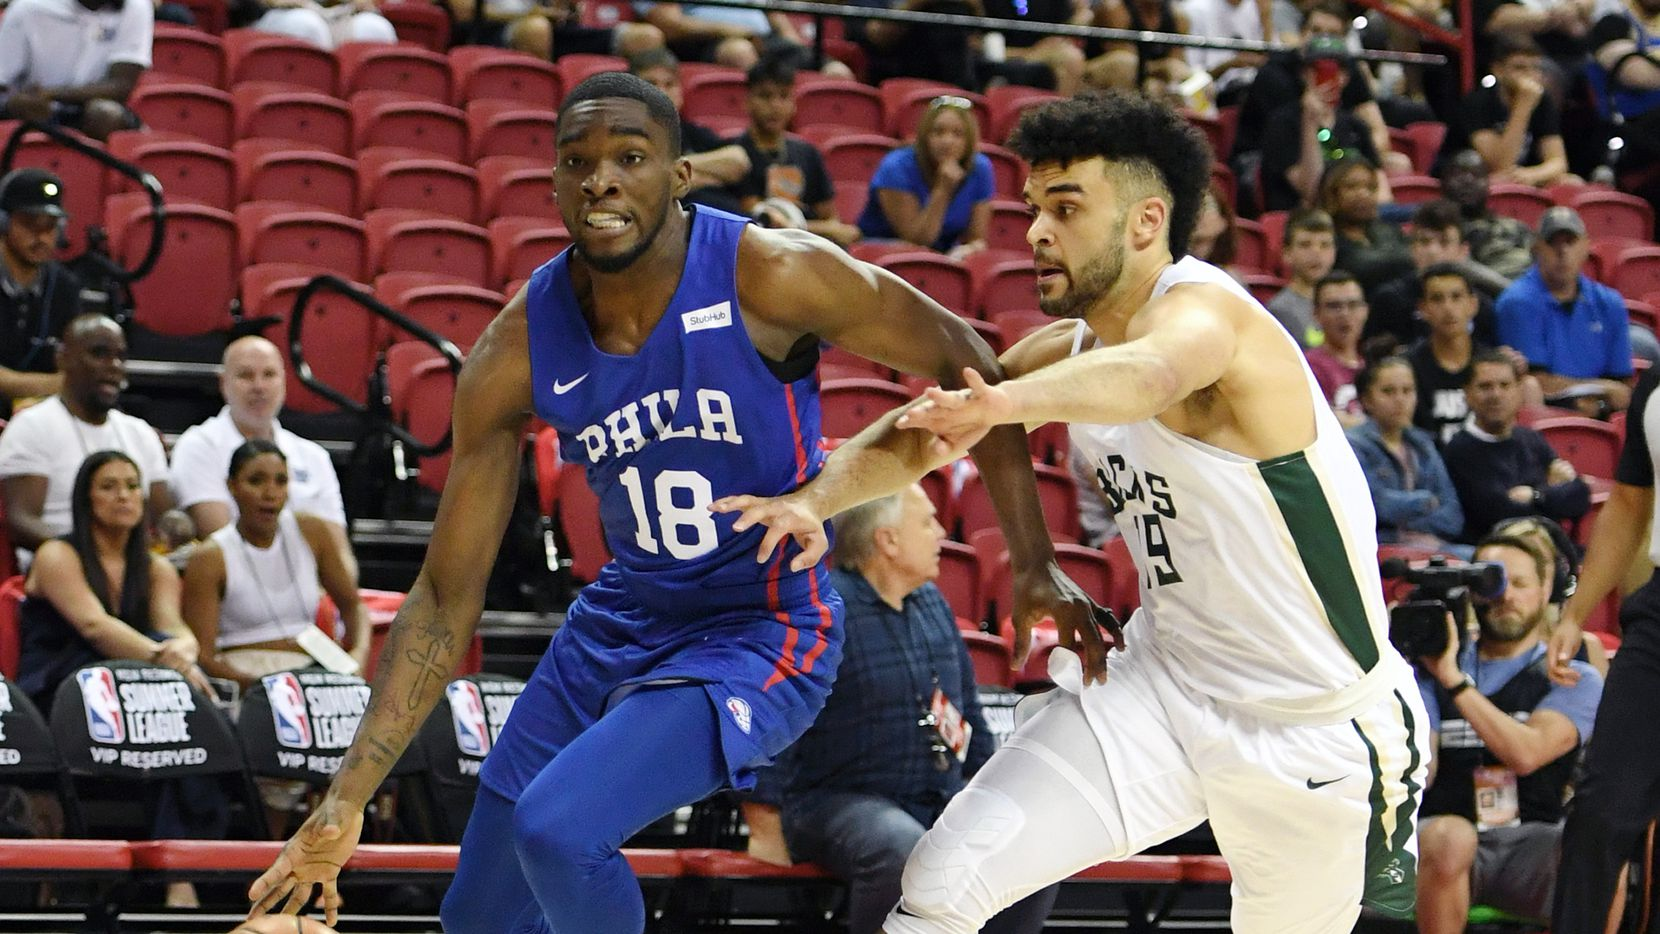 LAS VEGAS, NEVADA - JULY 05:  Shake Milton #18 of the Philadelphia 76ers drives under pressure from Elijah Bryant #19 of the Milwaukee Bucks during the 2019 NBA Summer League at the Thomas & Mack Center on July 5, 2019 in Las Vegas, Nevada. The 76ers defeated the Bucks 107-106. NOTE TO USER: User expressly acknowledges and agrees that, by downloading and or using this photograph, User is consenting to the terms and conditions of the Getty Images License Agreement.  (Photo by Ethan Miller/Getty Images)